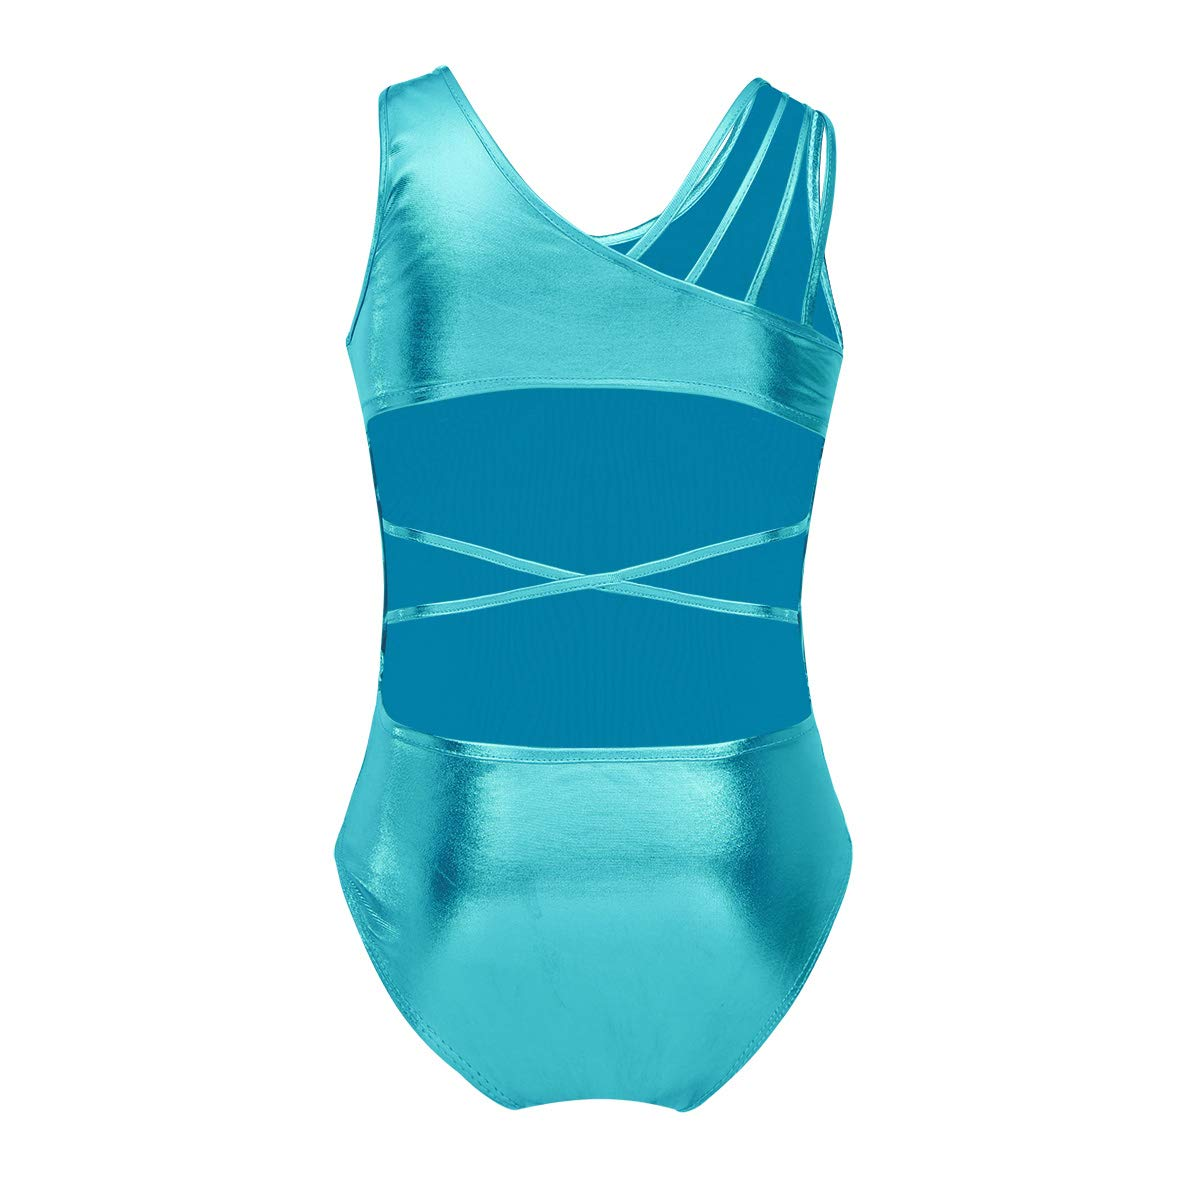 TiaoBug SWIMWEAR ガールズ B07GFHLB5Y Lake Blue(open Back With Straps) 43654